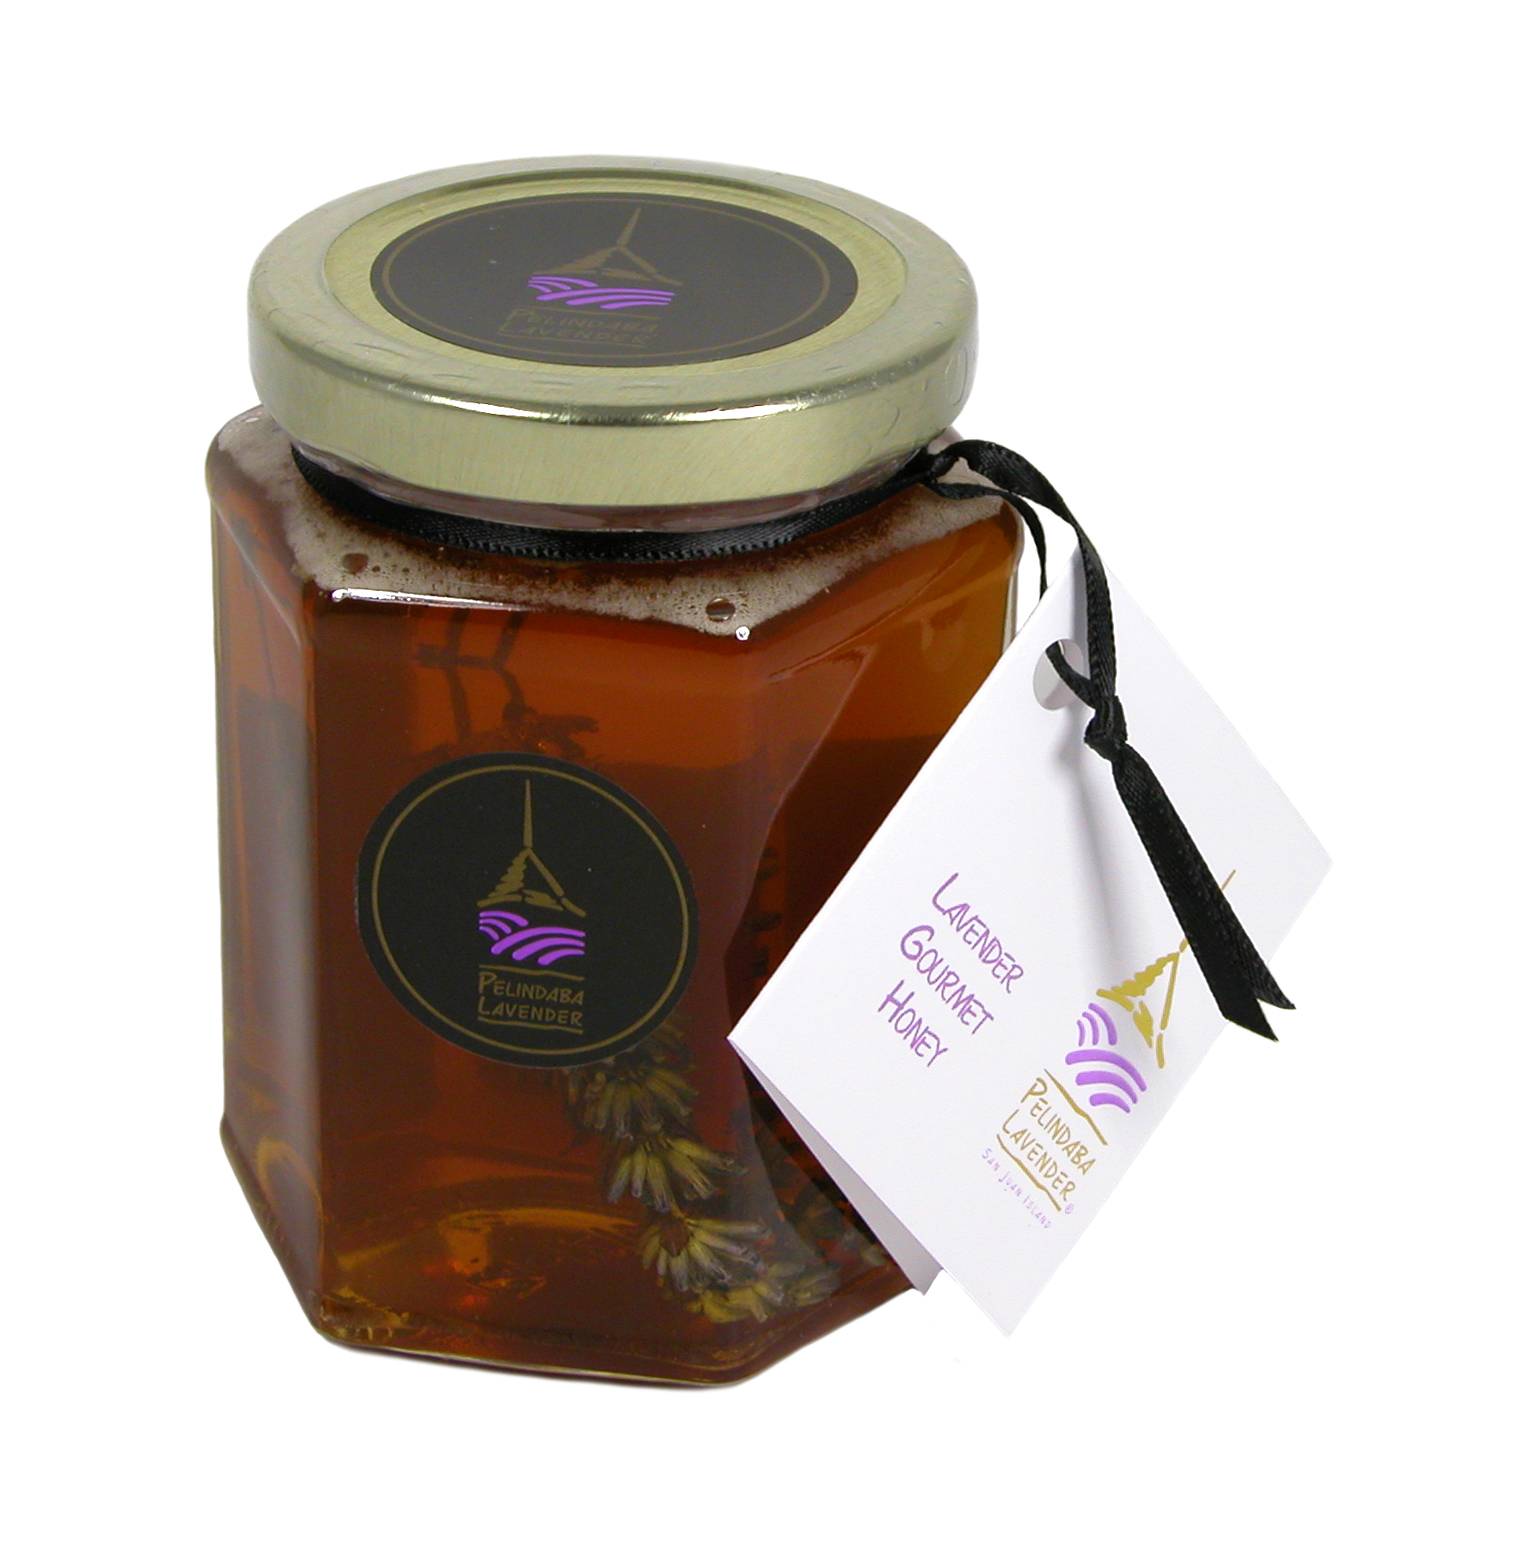 Pelindaba Lavender Gourmet Honey made from our own organic lavender flowers